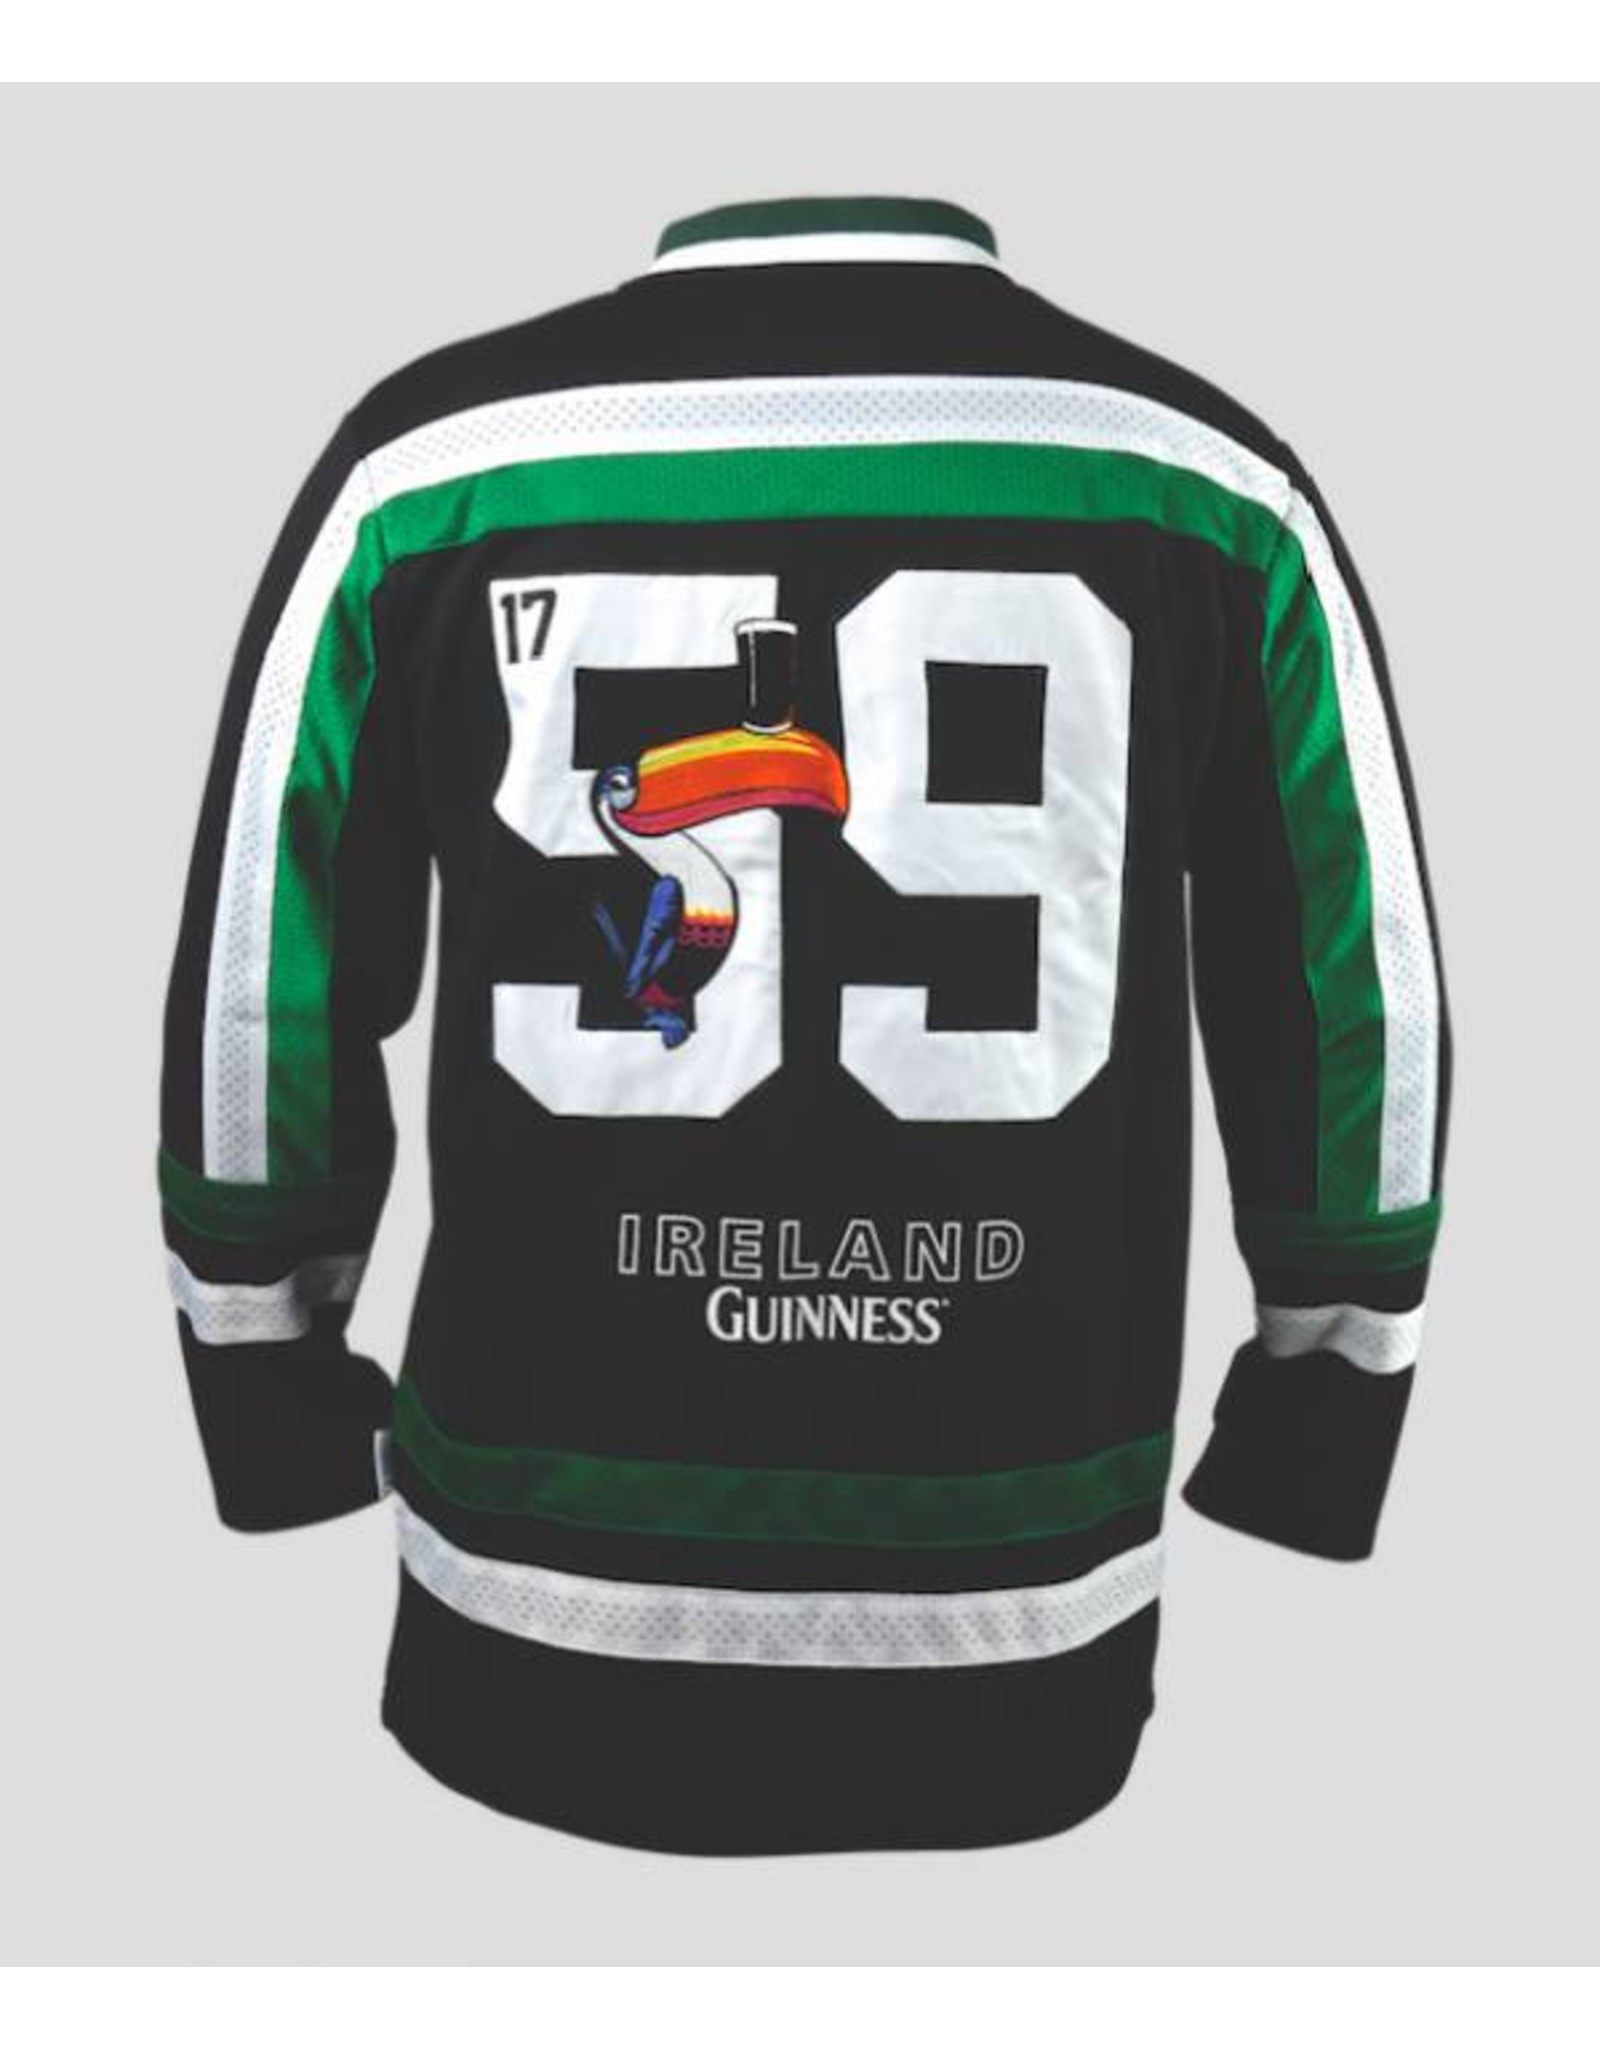 Guinness Guinness Toucan Hockey Jersey Black & Green